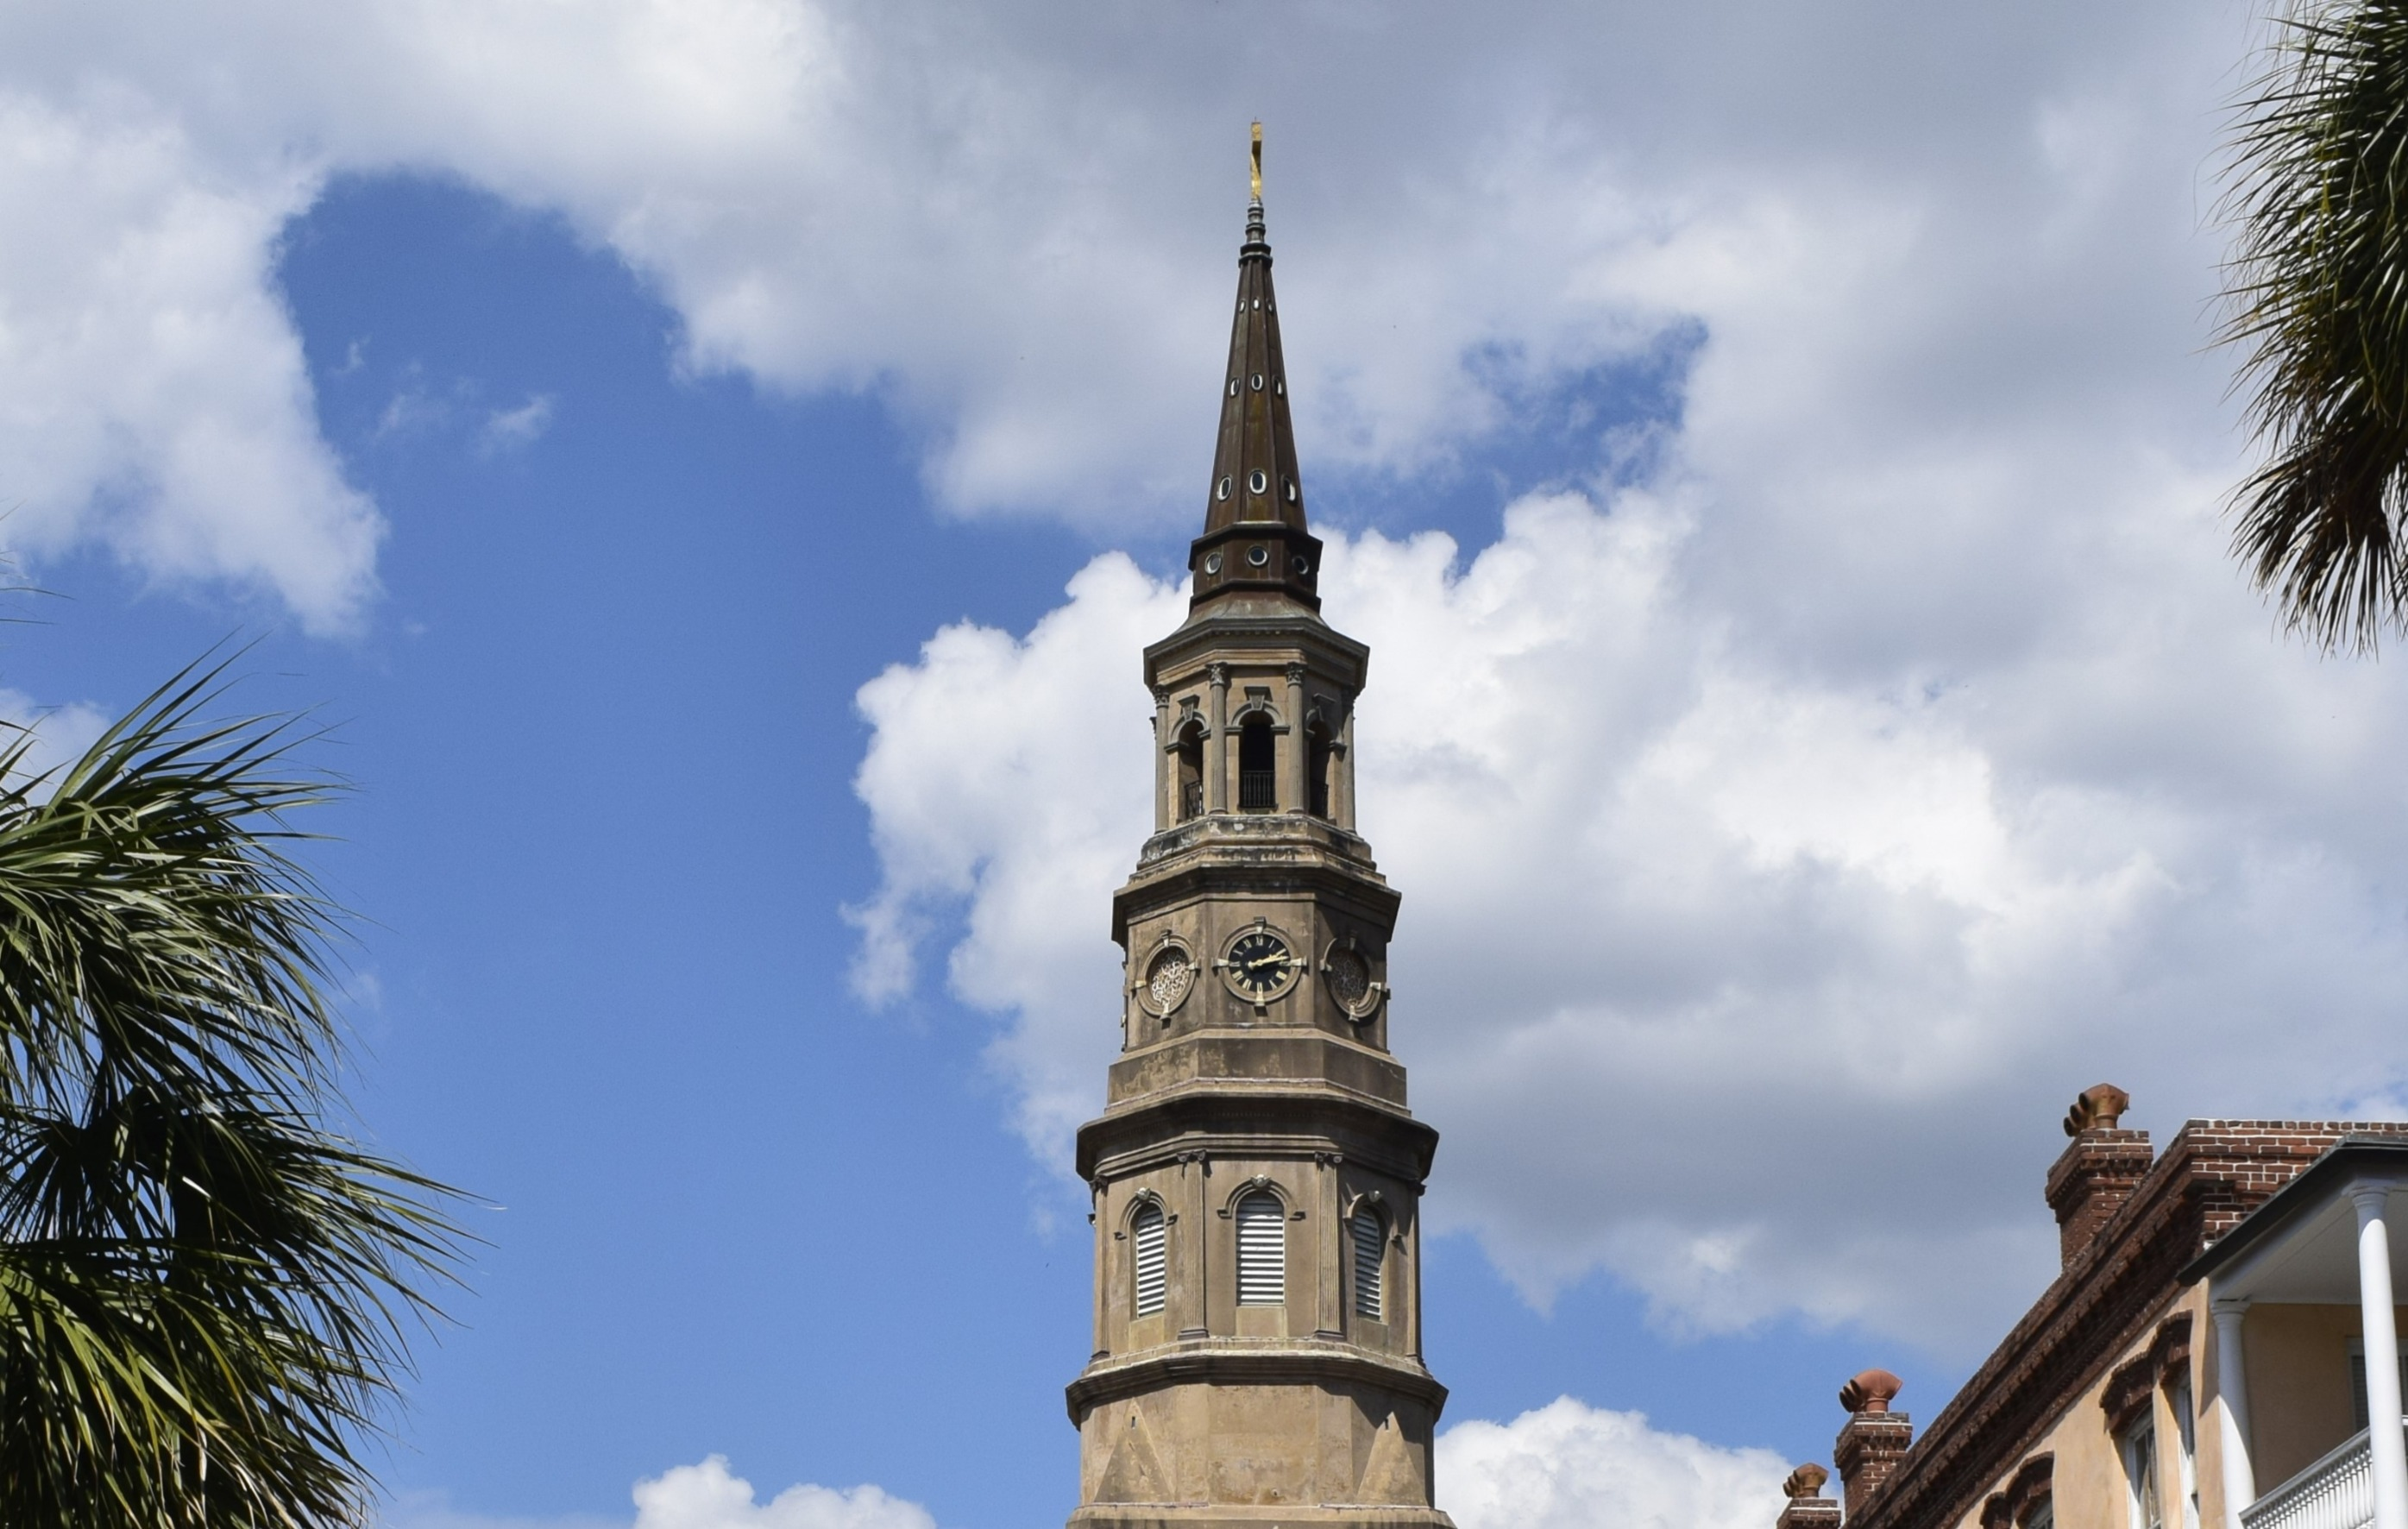 St. Philip's Church steeple